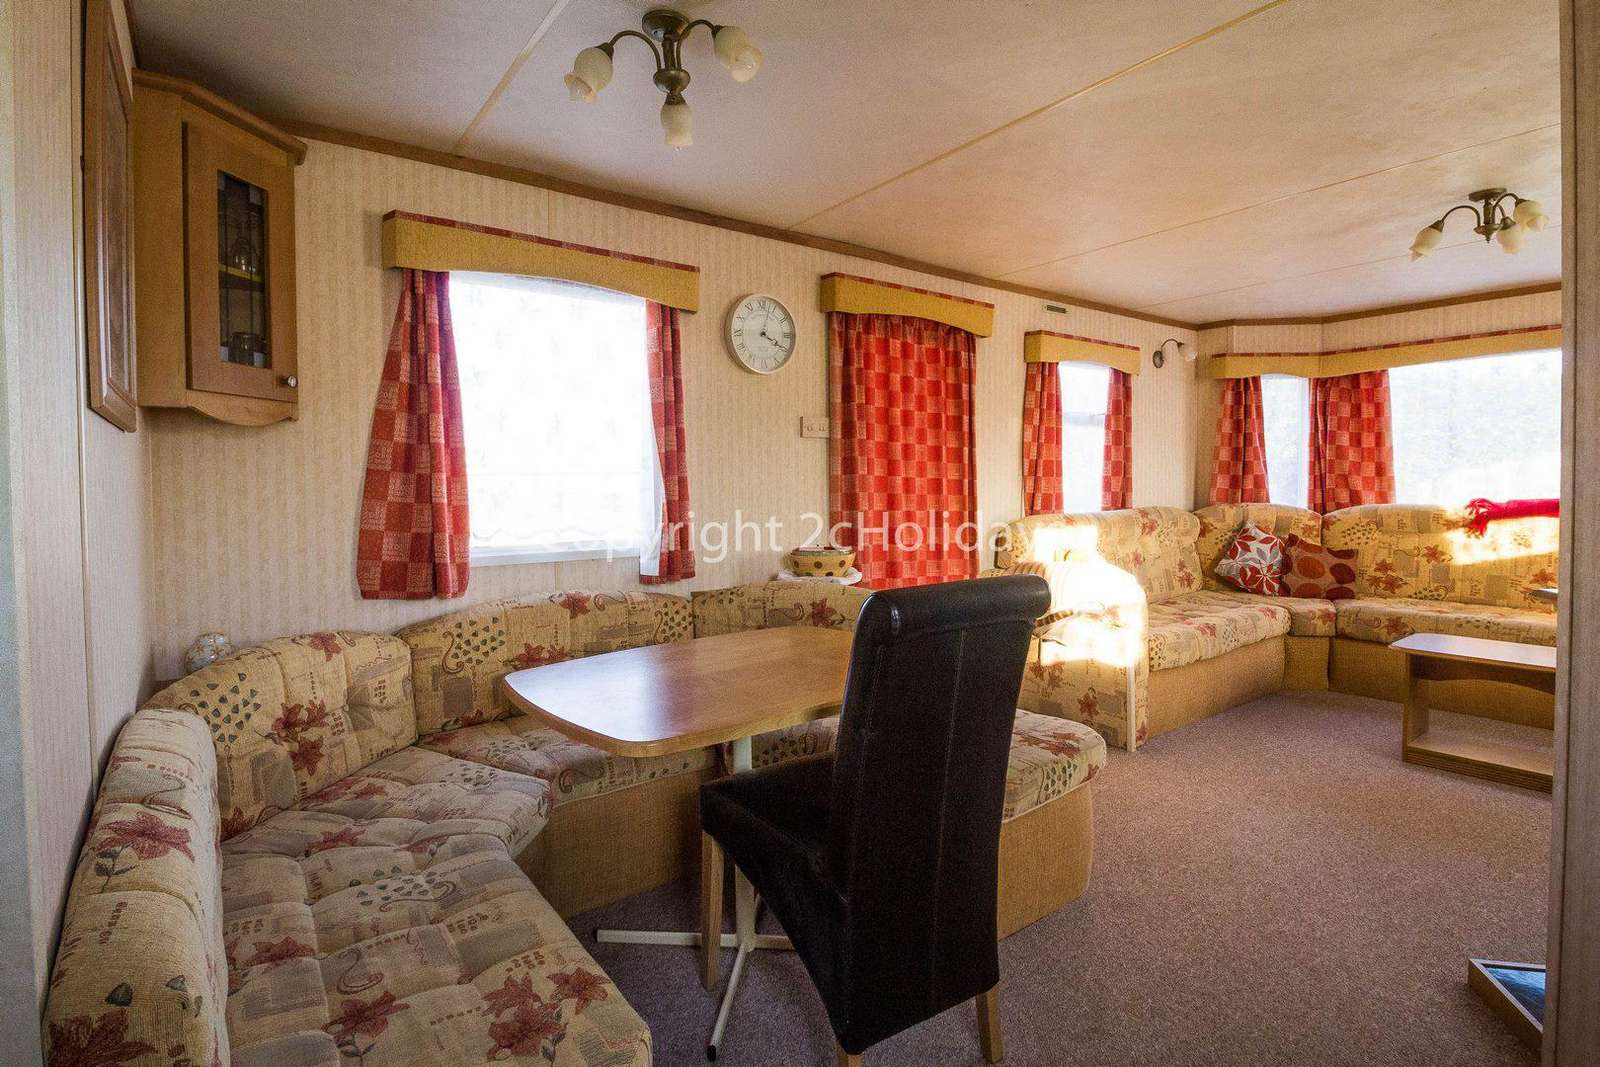 Kessingland Beach Park Resort, in Lowestoft. Perfect for families